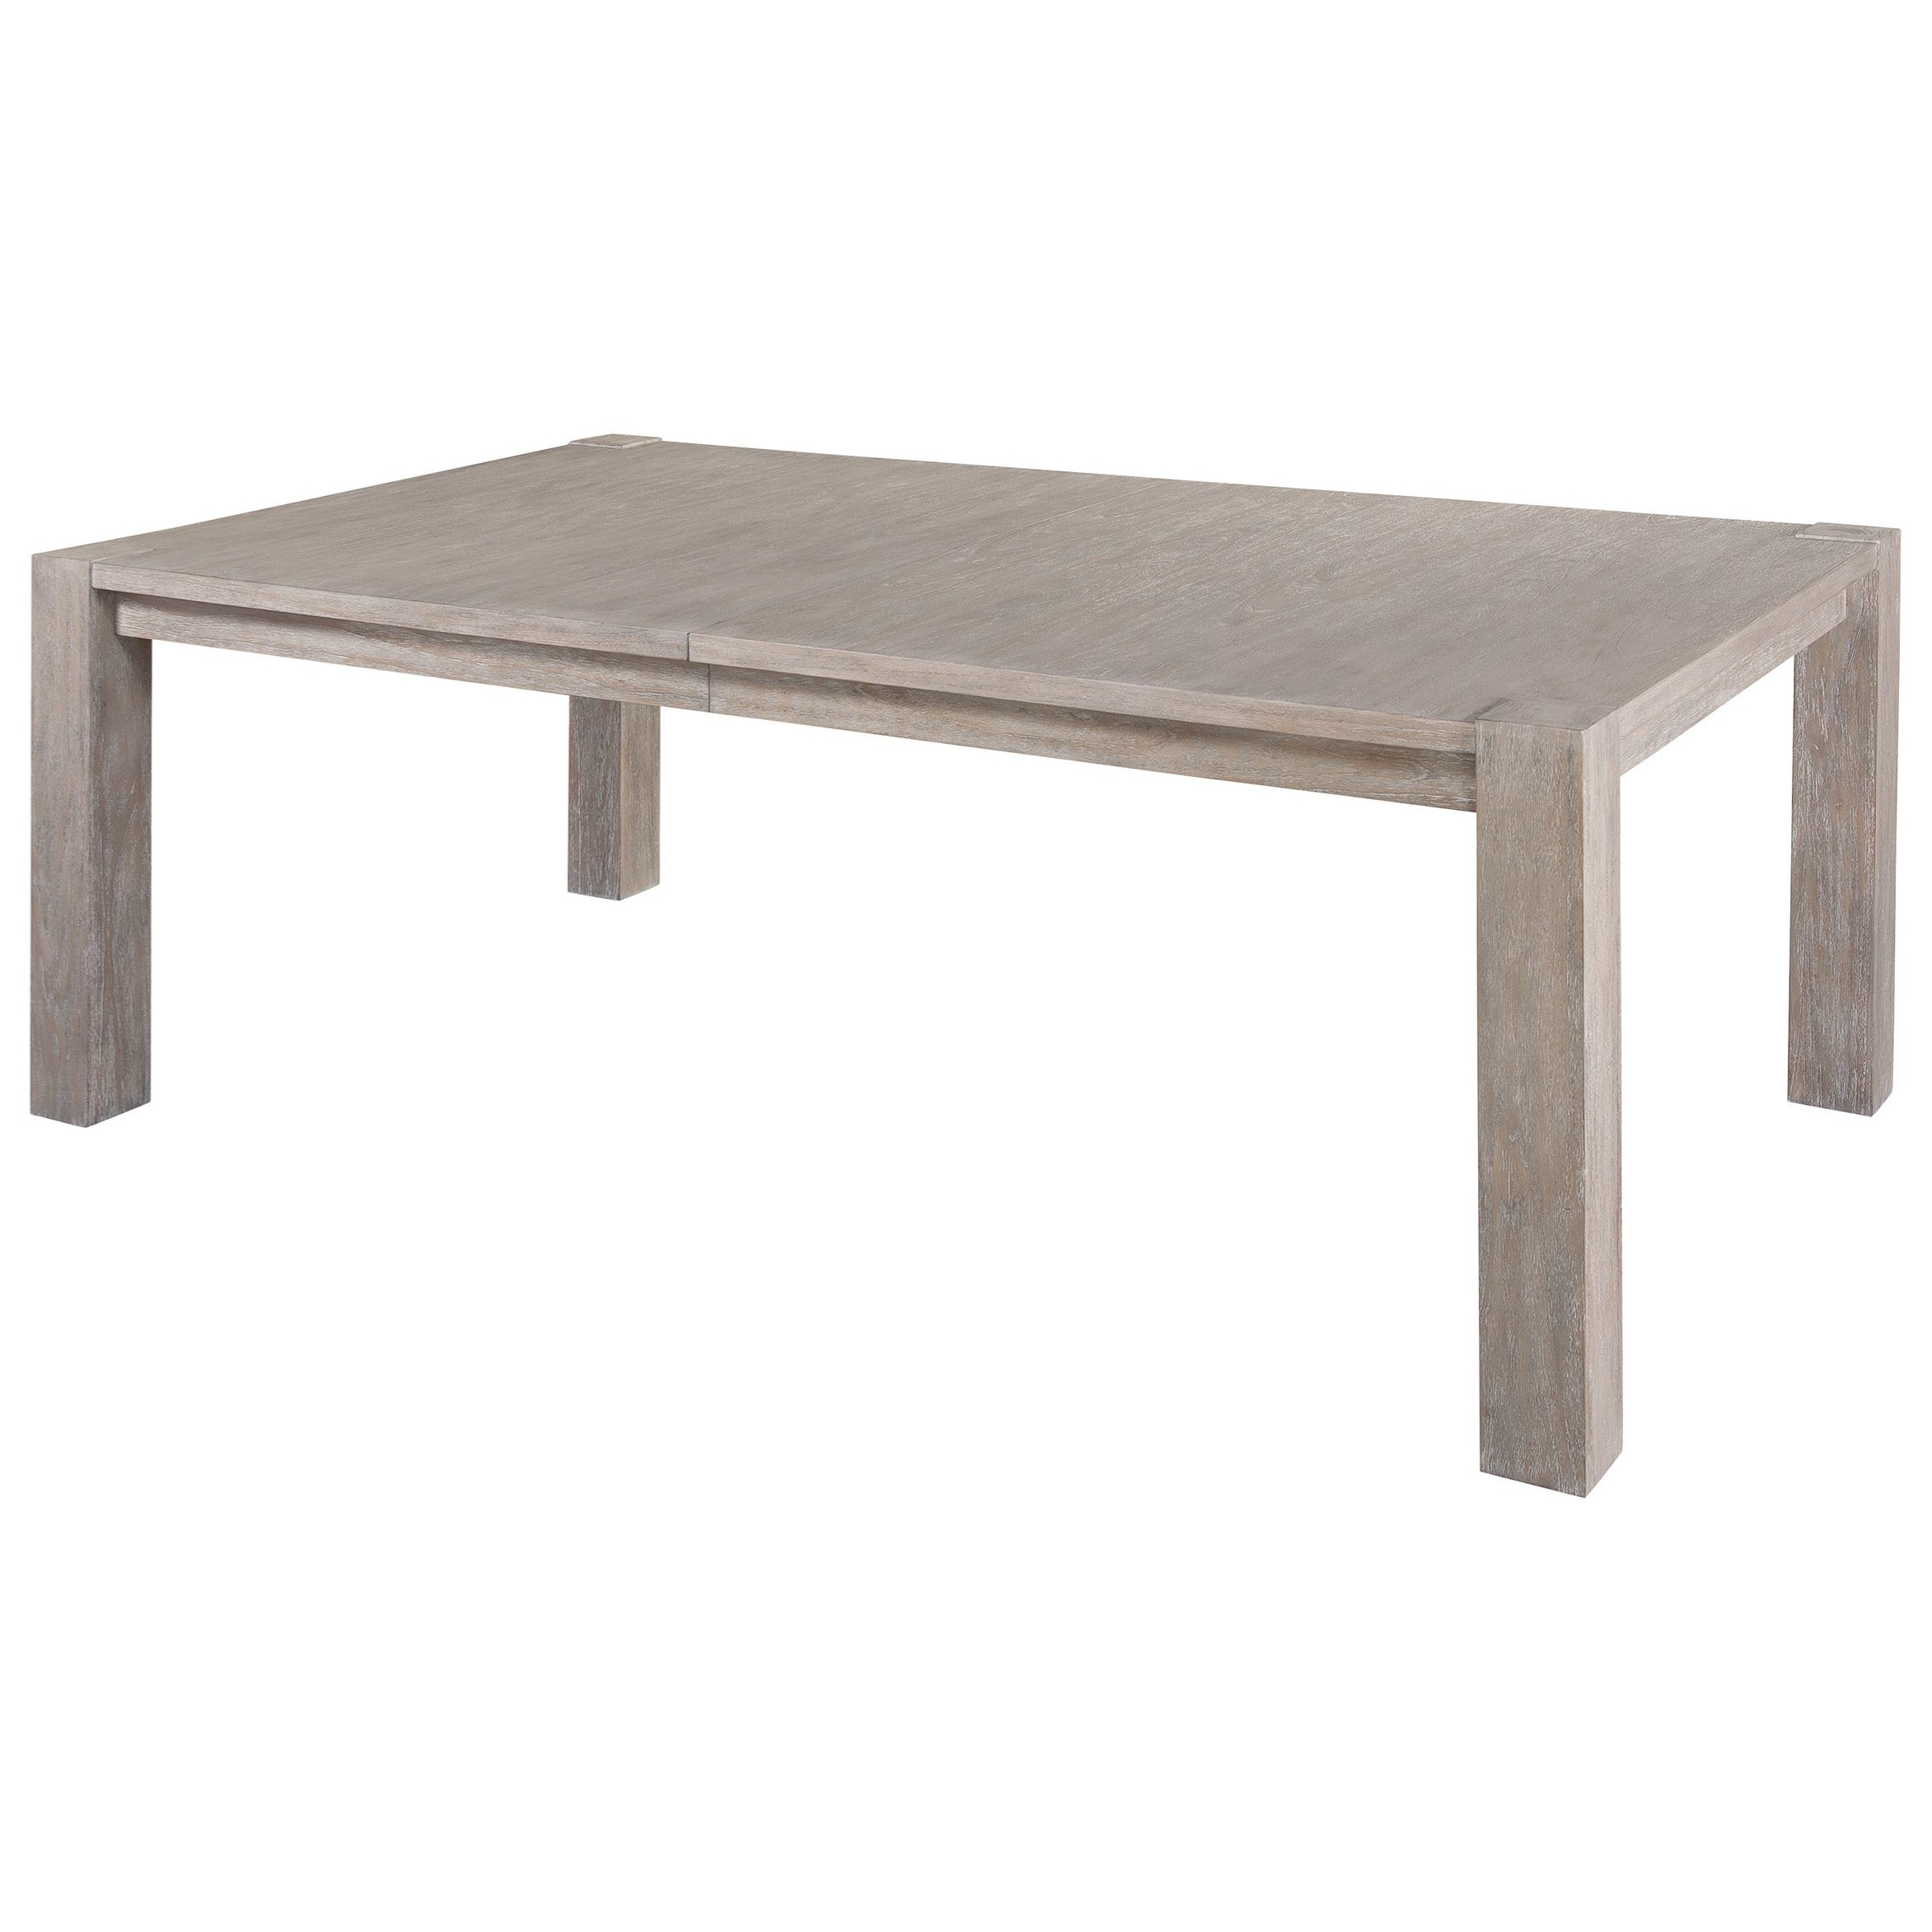 Most Popular Wood Kitchen Dining Tables With Removable Center Leaf With Hekman Berkeley Heights 1 7120 Rectangular Post Dining Table (View 24 of 30)